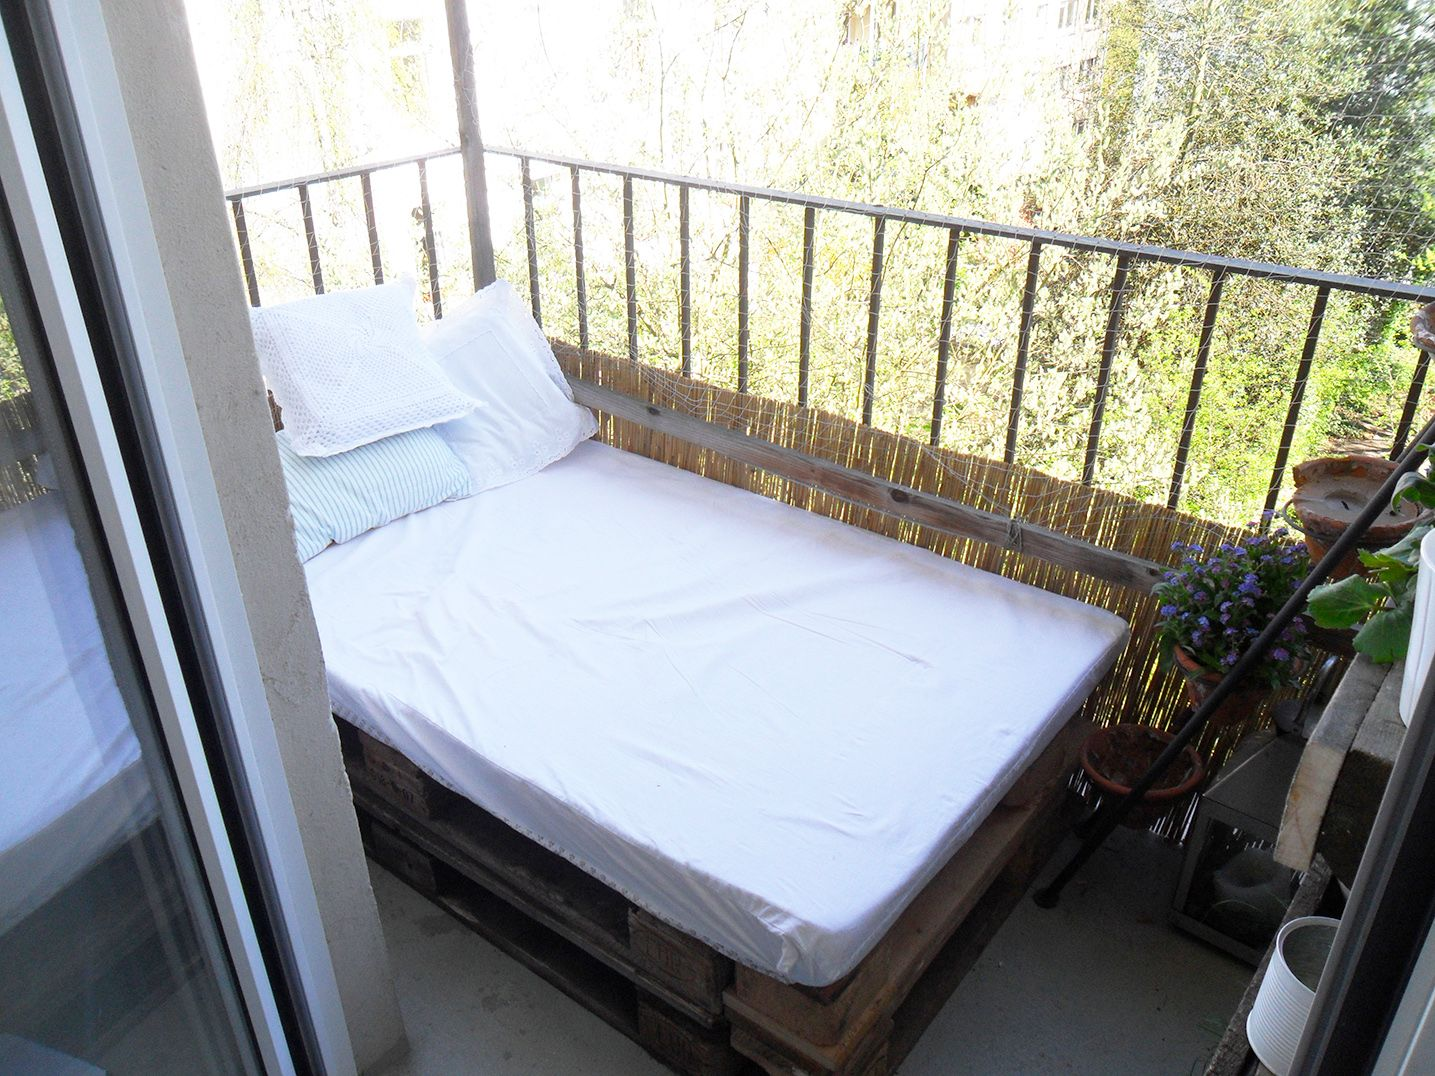 Freiluft-Bett auf dem Balkon...geniale Idee | Sandy\'s Do It Yourself ...